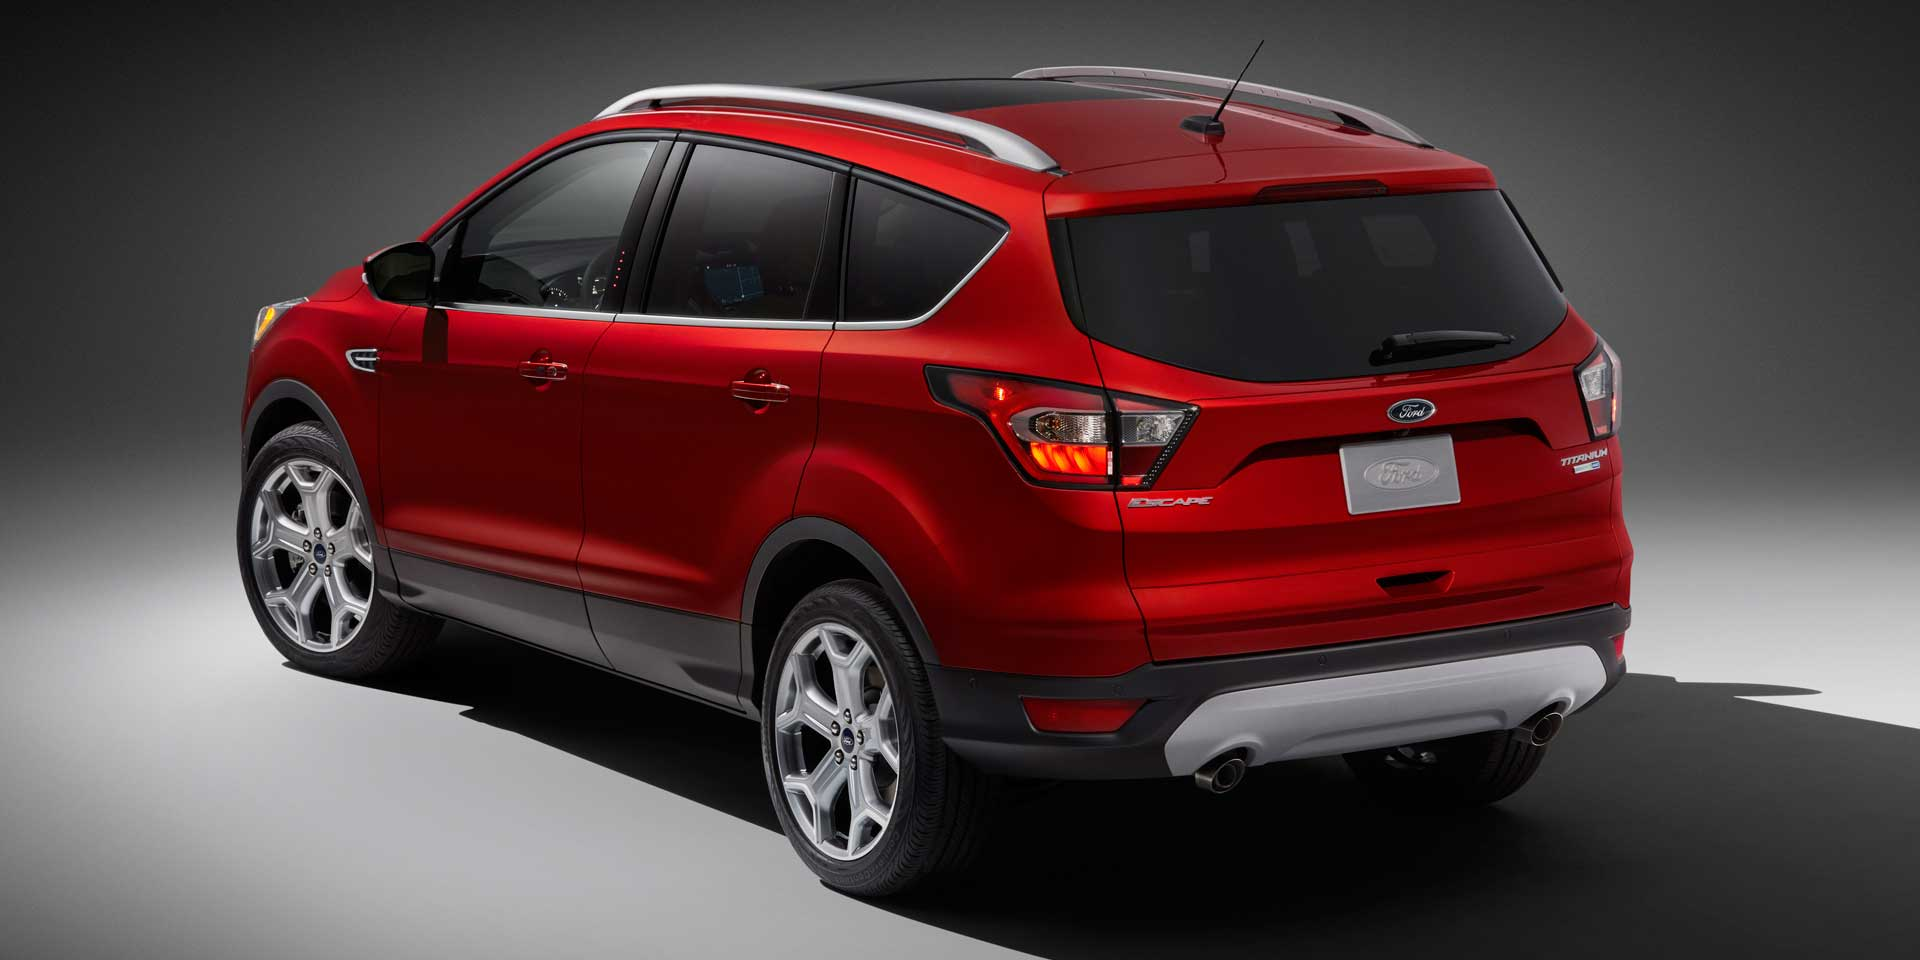 2018 - Ford - Escape - Vehicles on Display   Chicago Auto Show